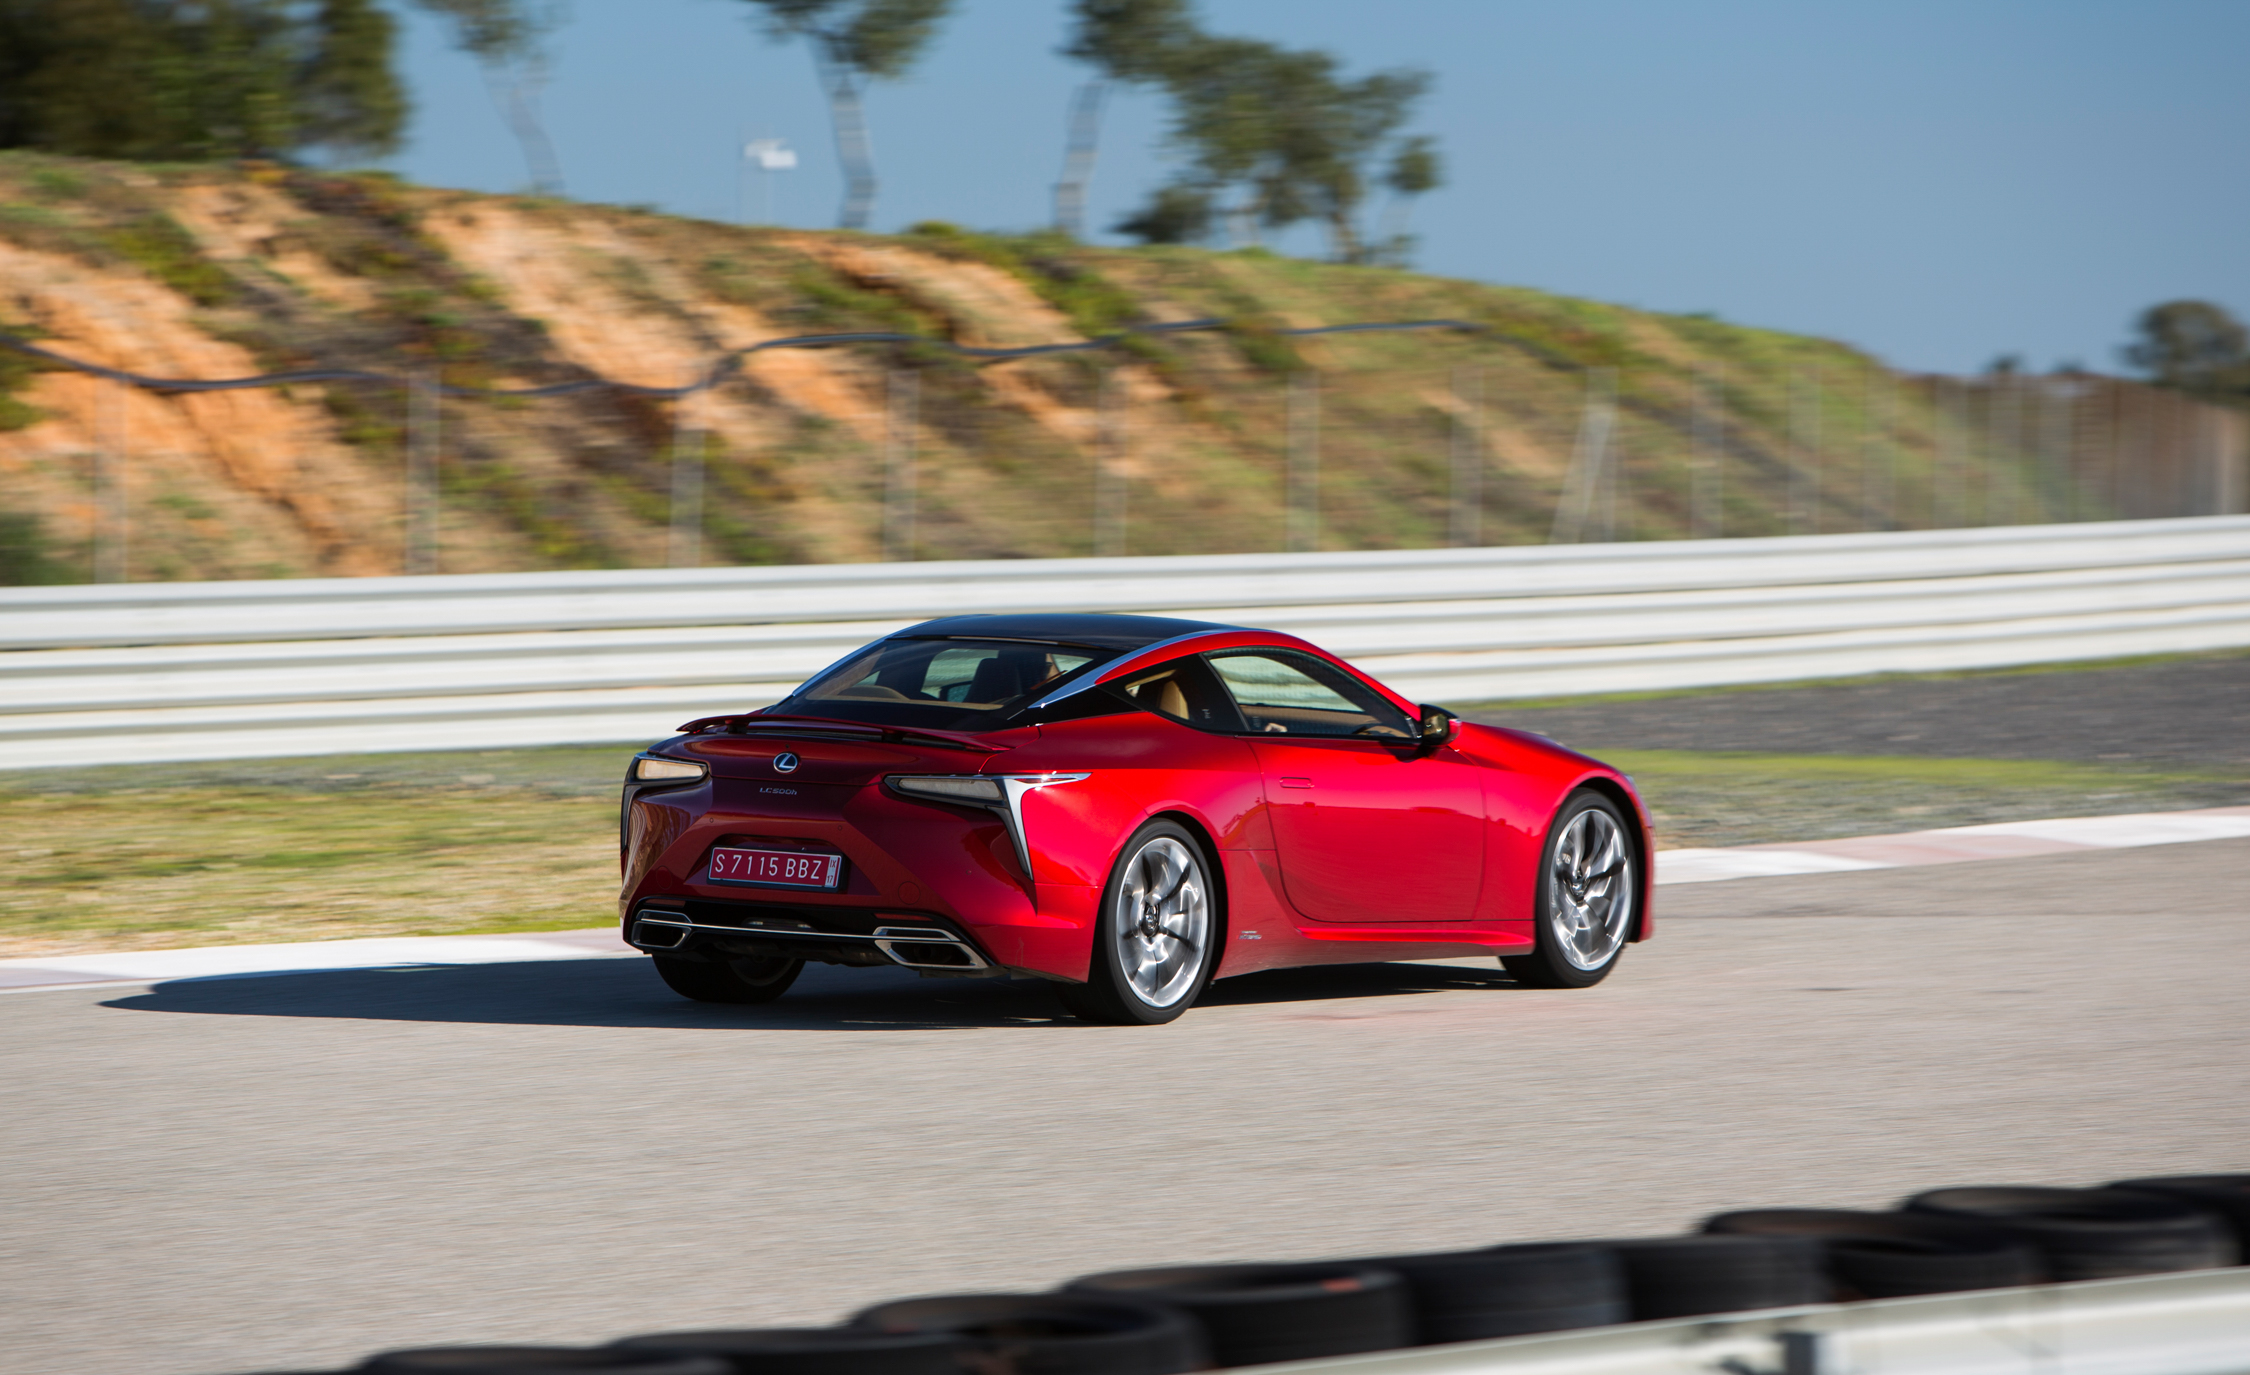 2018 Lexus Lc 500 Red Test Drive Rear And Side View (View 7 of 84)